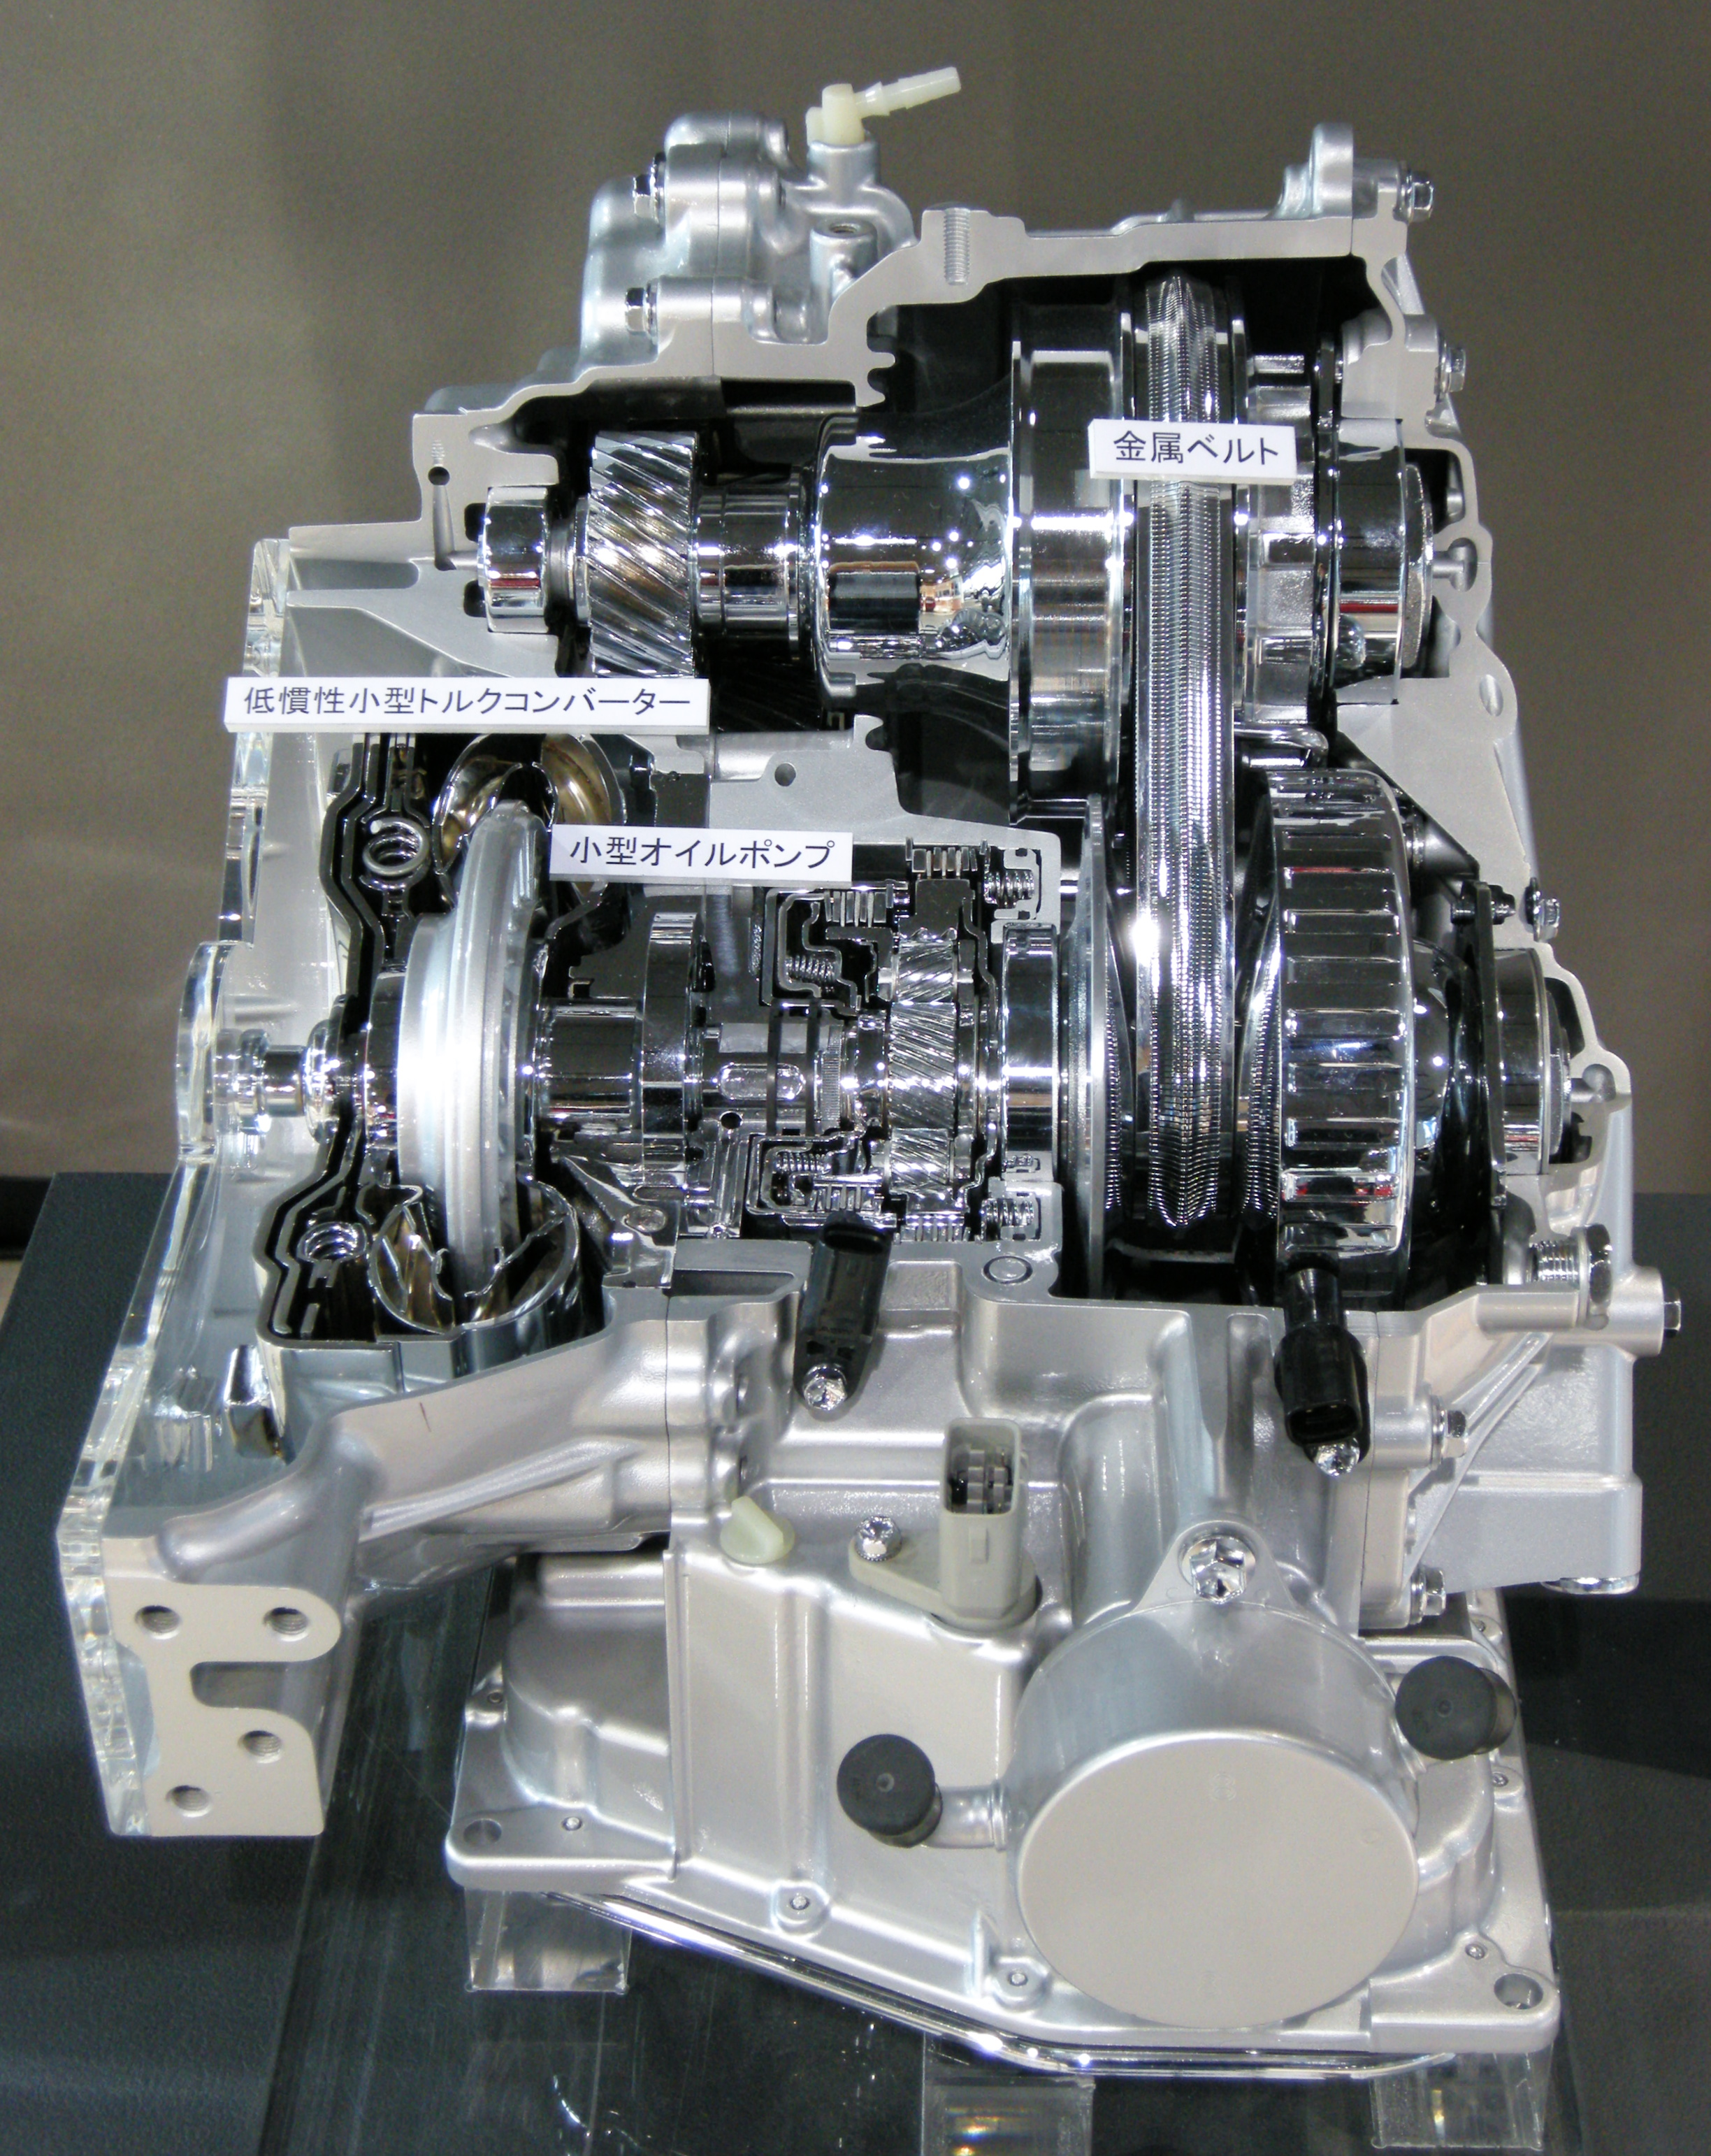 Description Toyota Super CVT-i 01.JPG